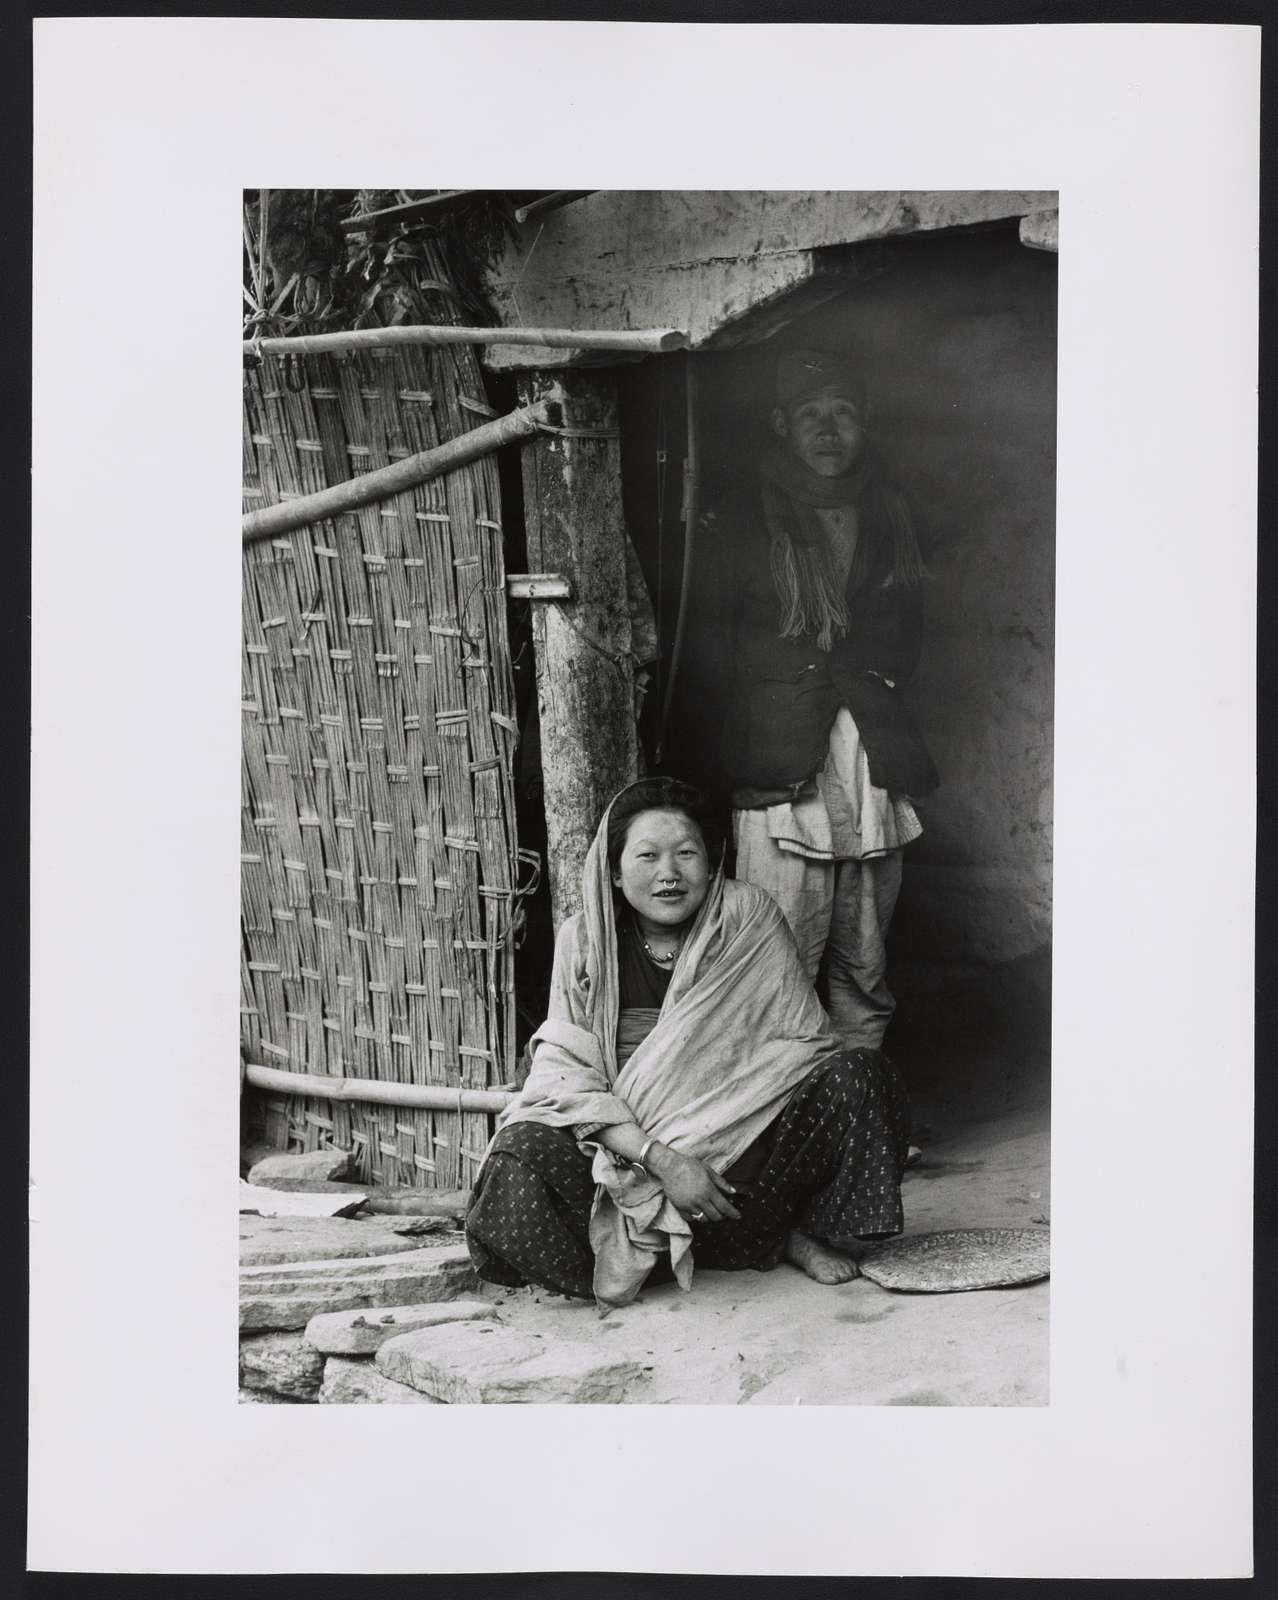 [Portrait of a woman and man, possibly Nepalese, Sikkim]